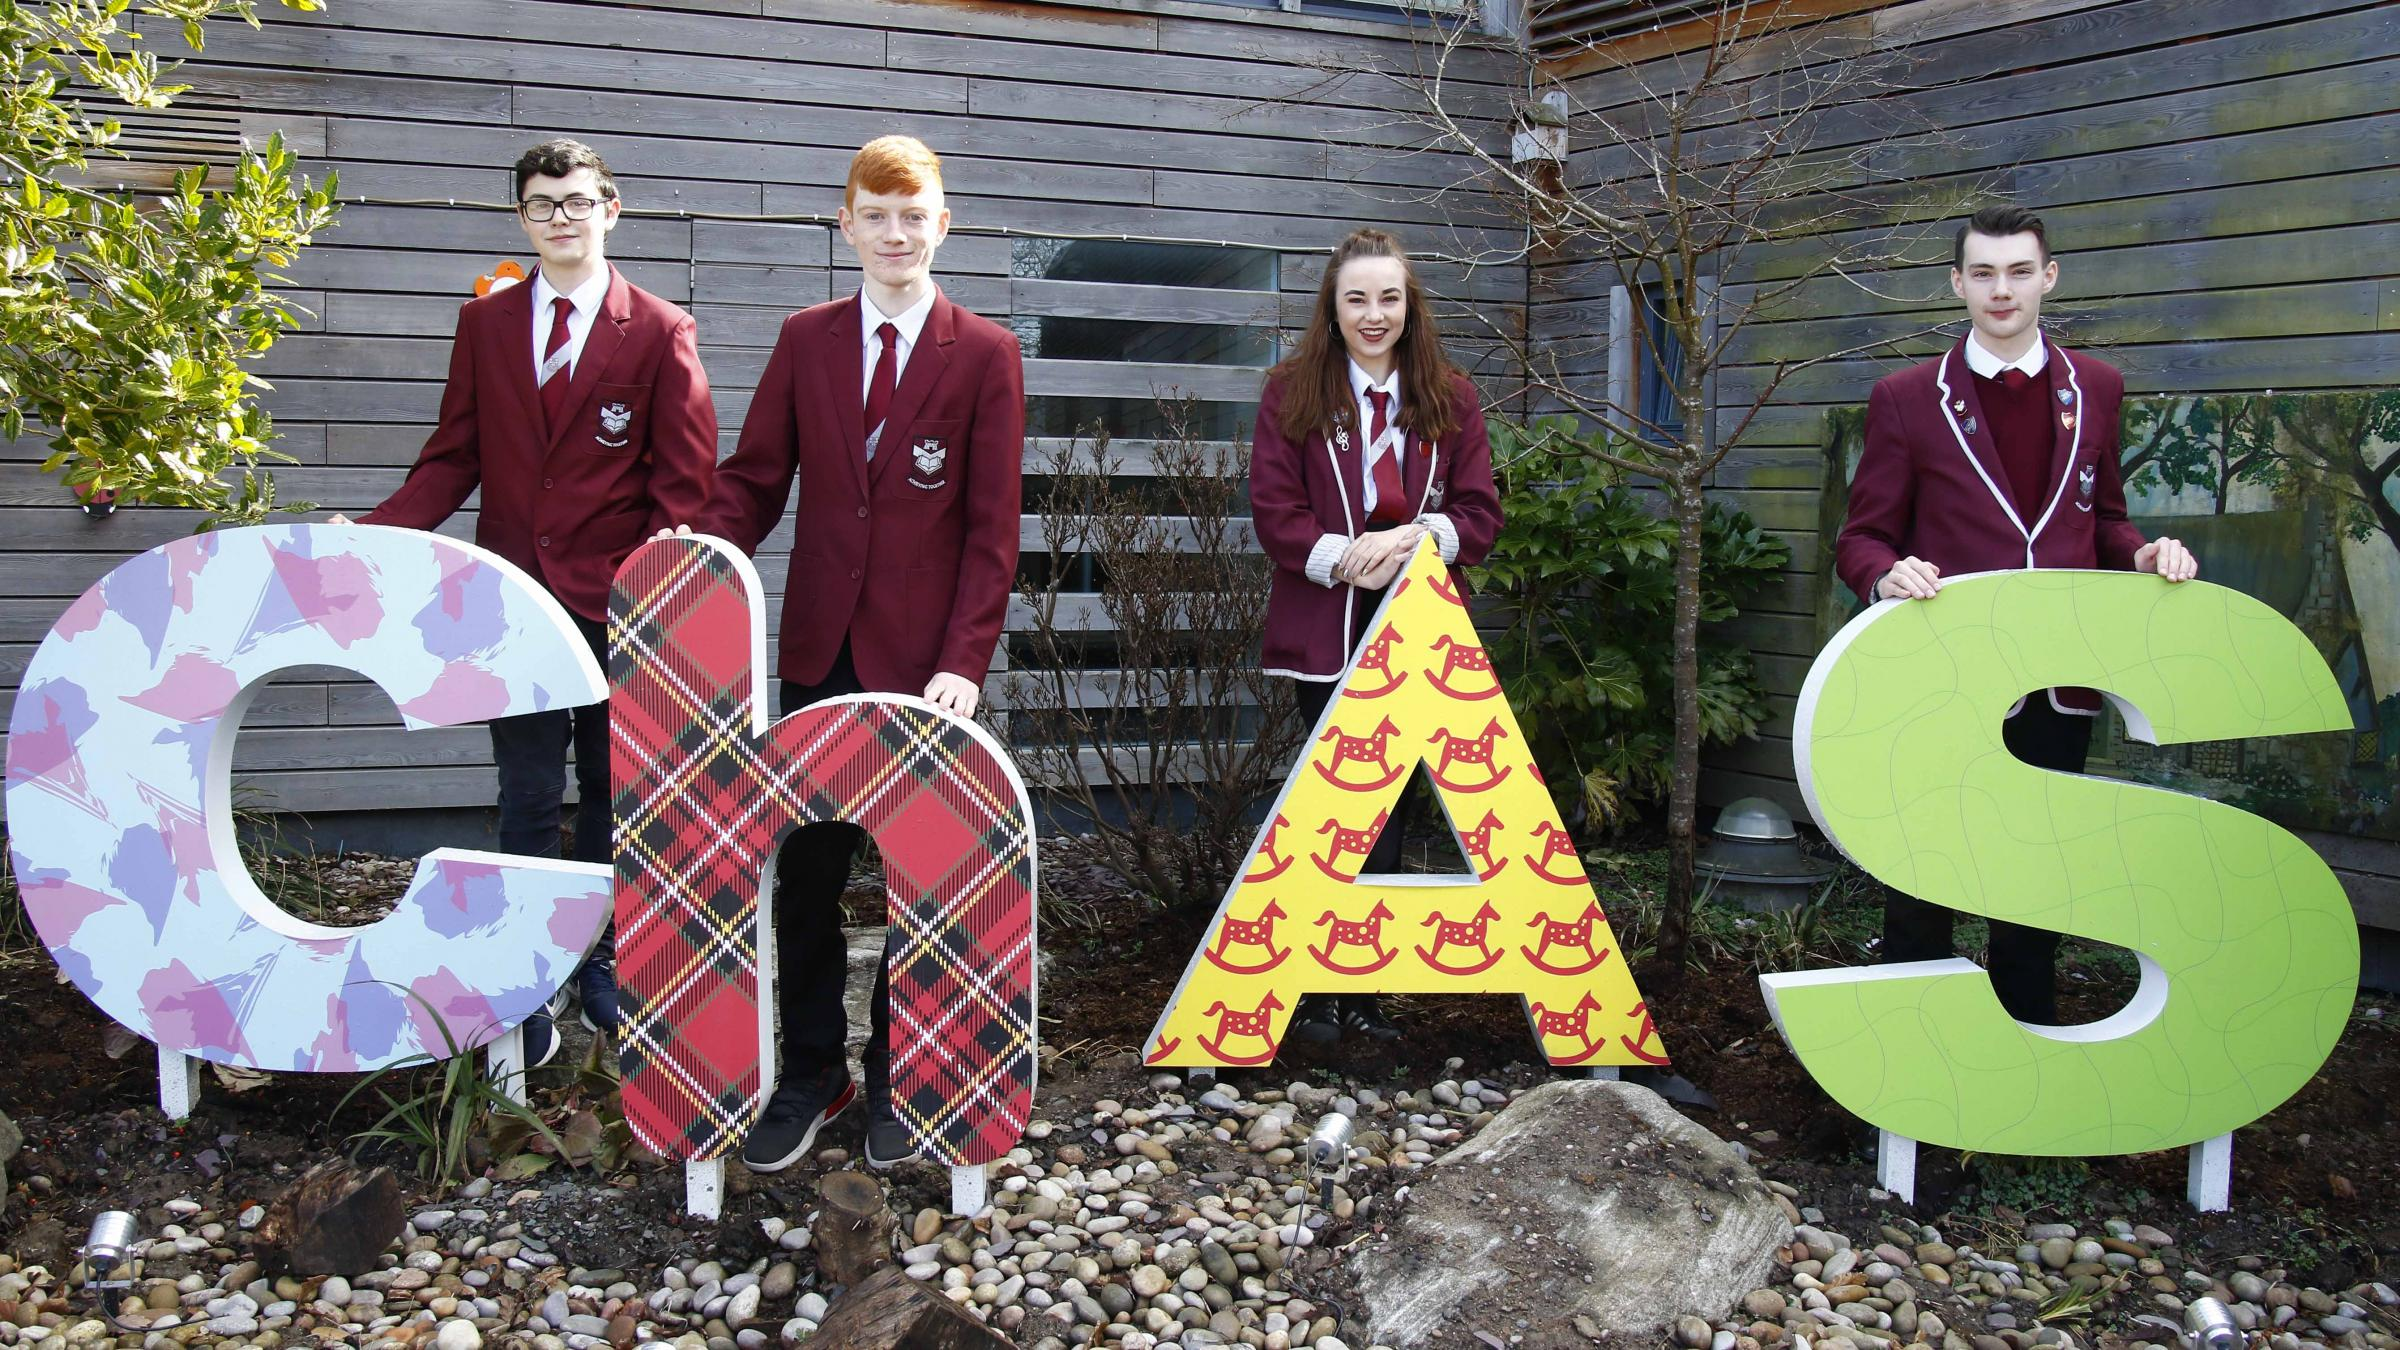 Sixth years Jamie Bakhsh and Niamh MacEachran, and fourth years Connor McFadden and Cameron Munro